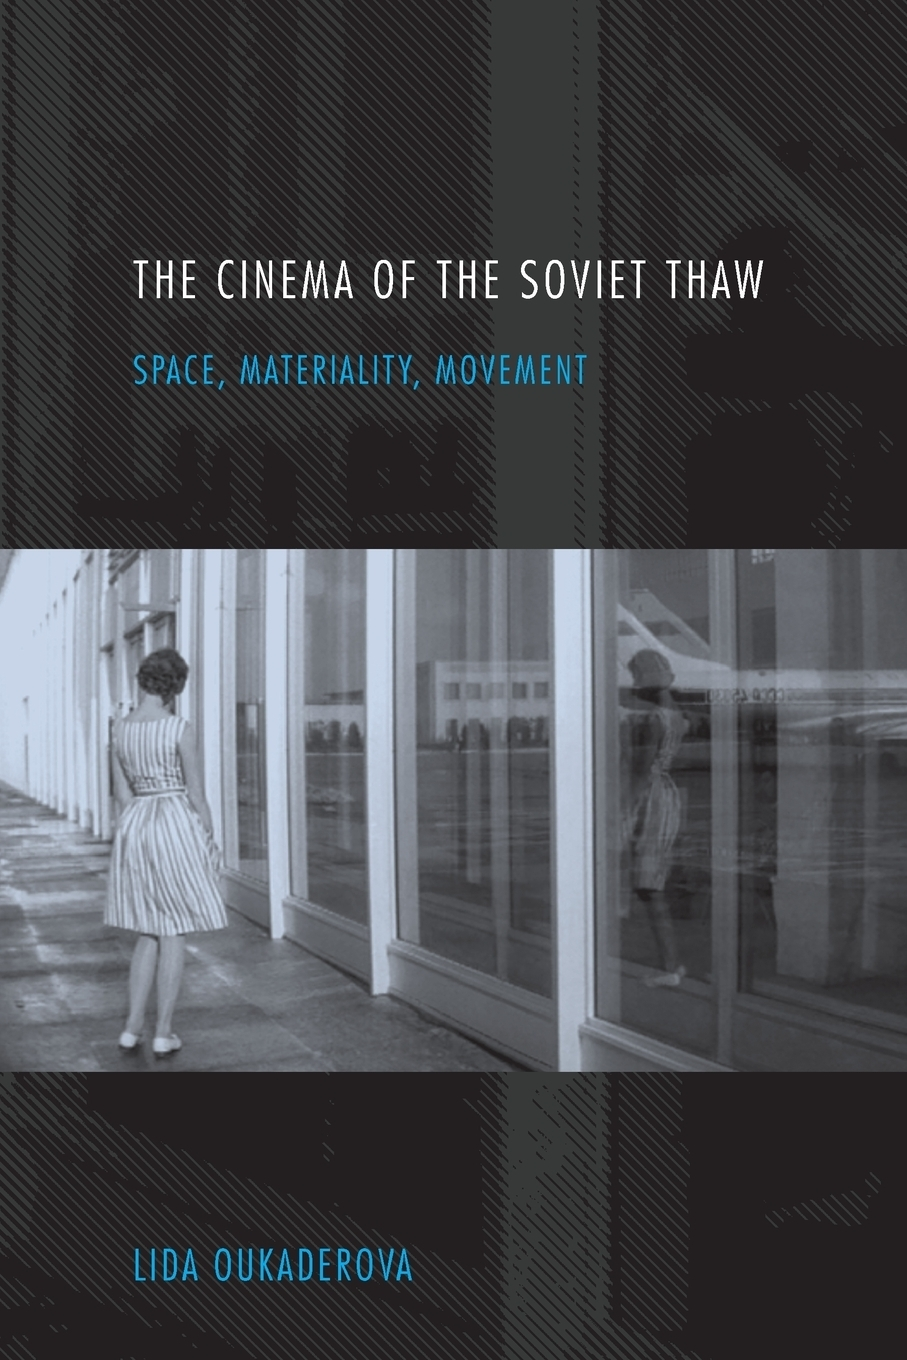 Lida Oukaderova. Cinema of the Soviet Thaw. Space, Materiality, Movement